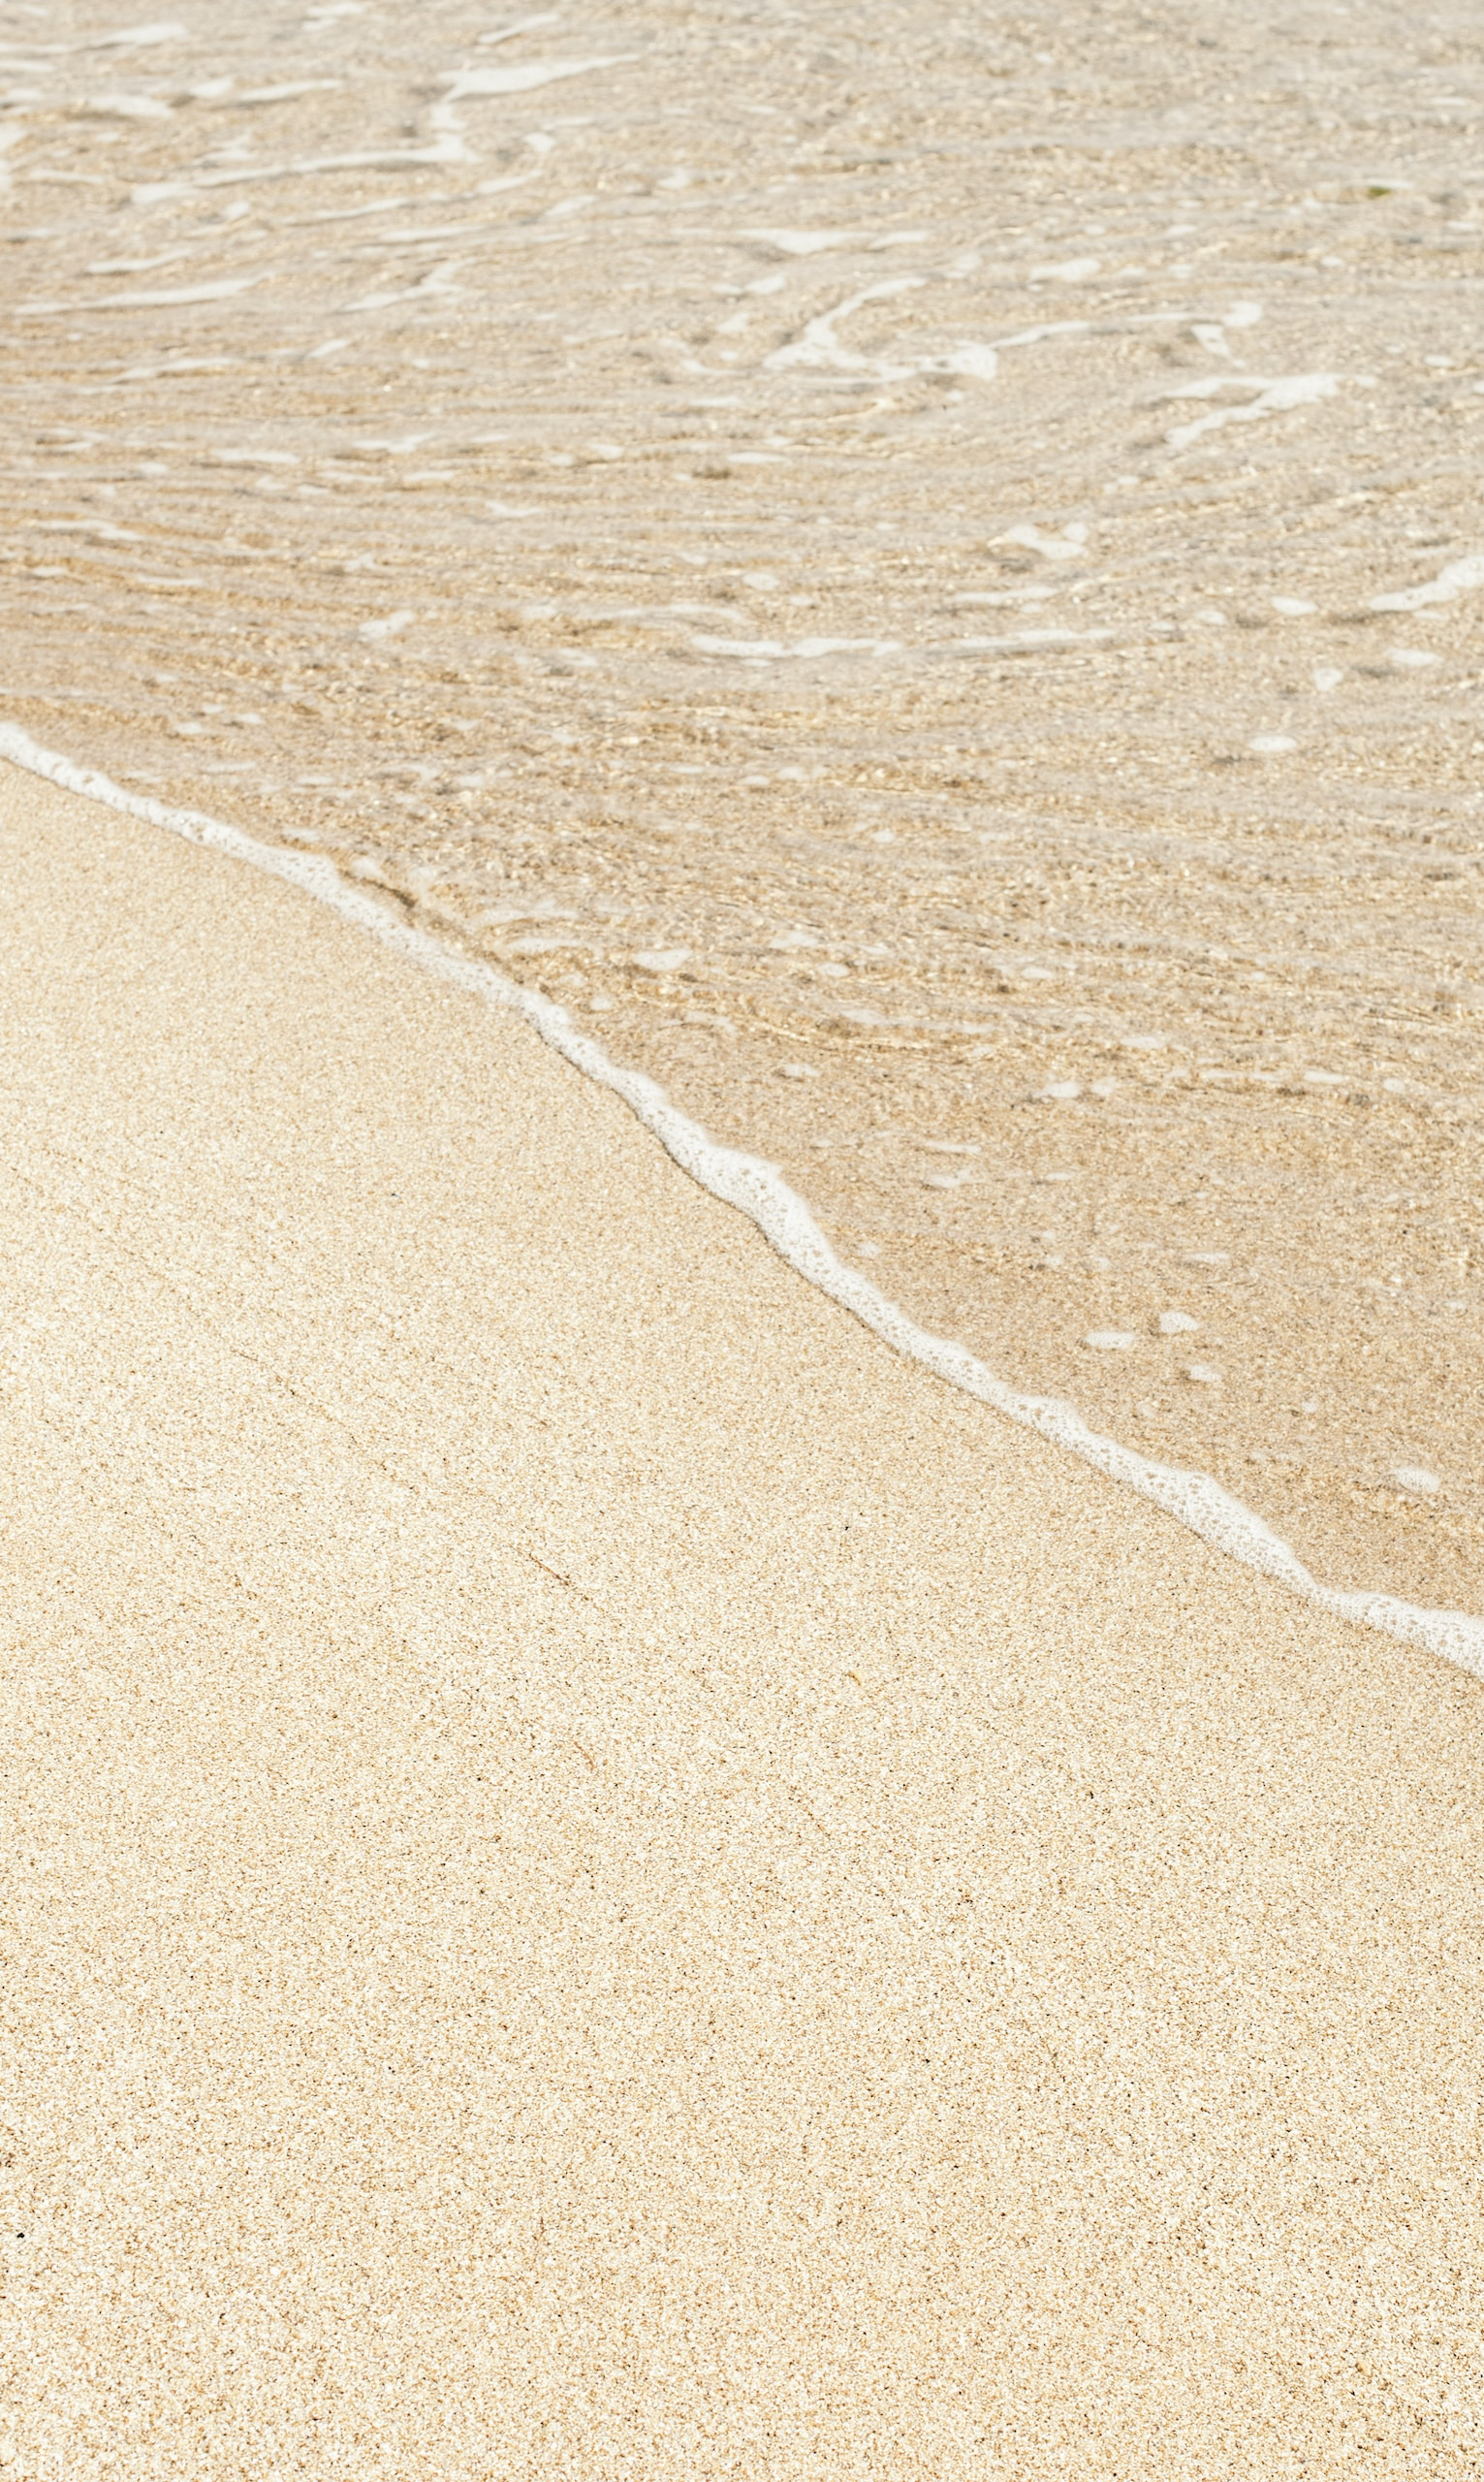 brown sand with white sand